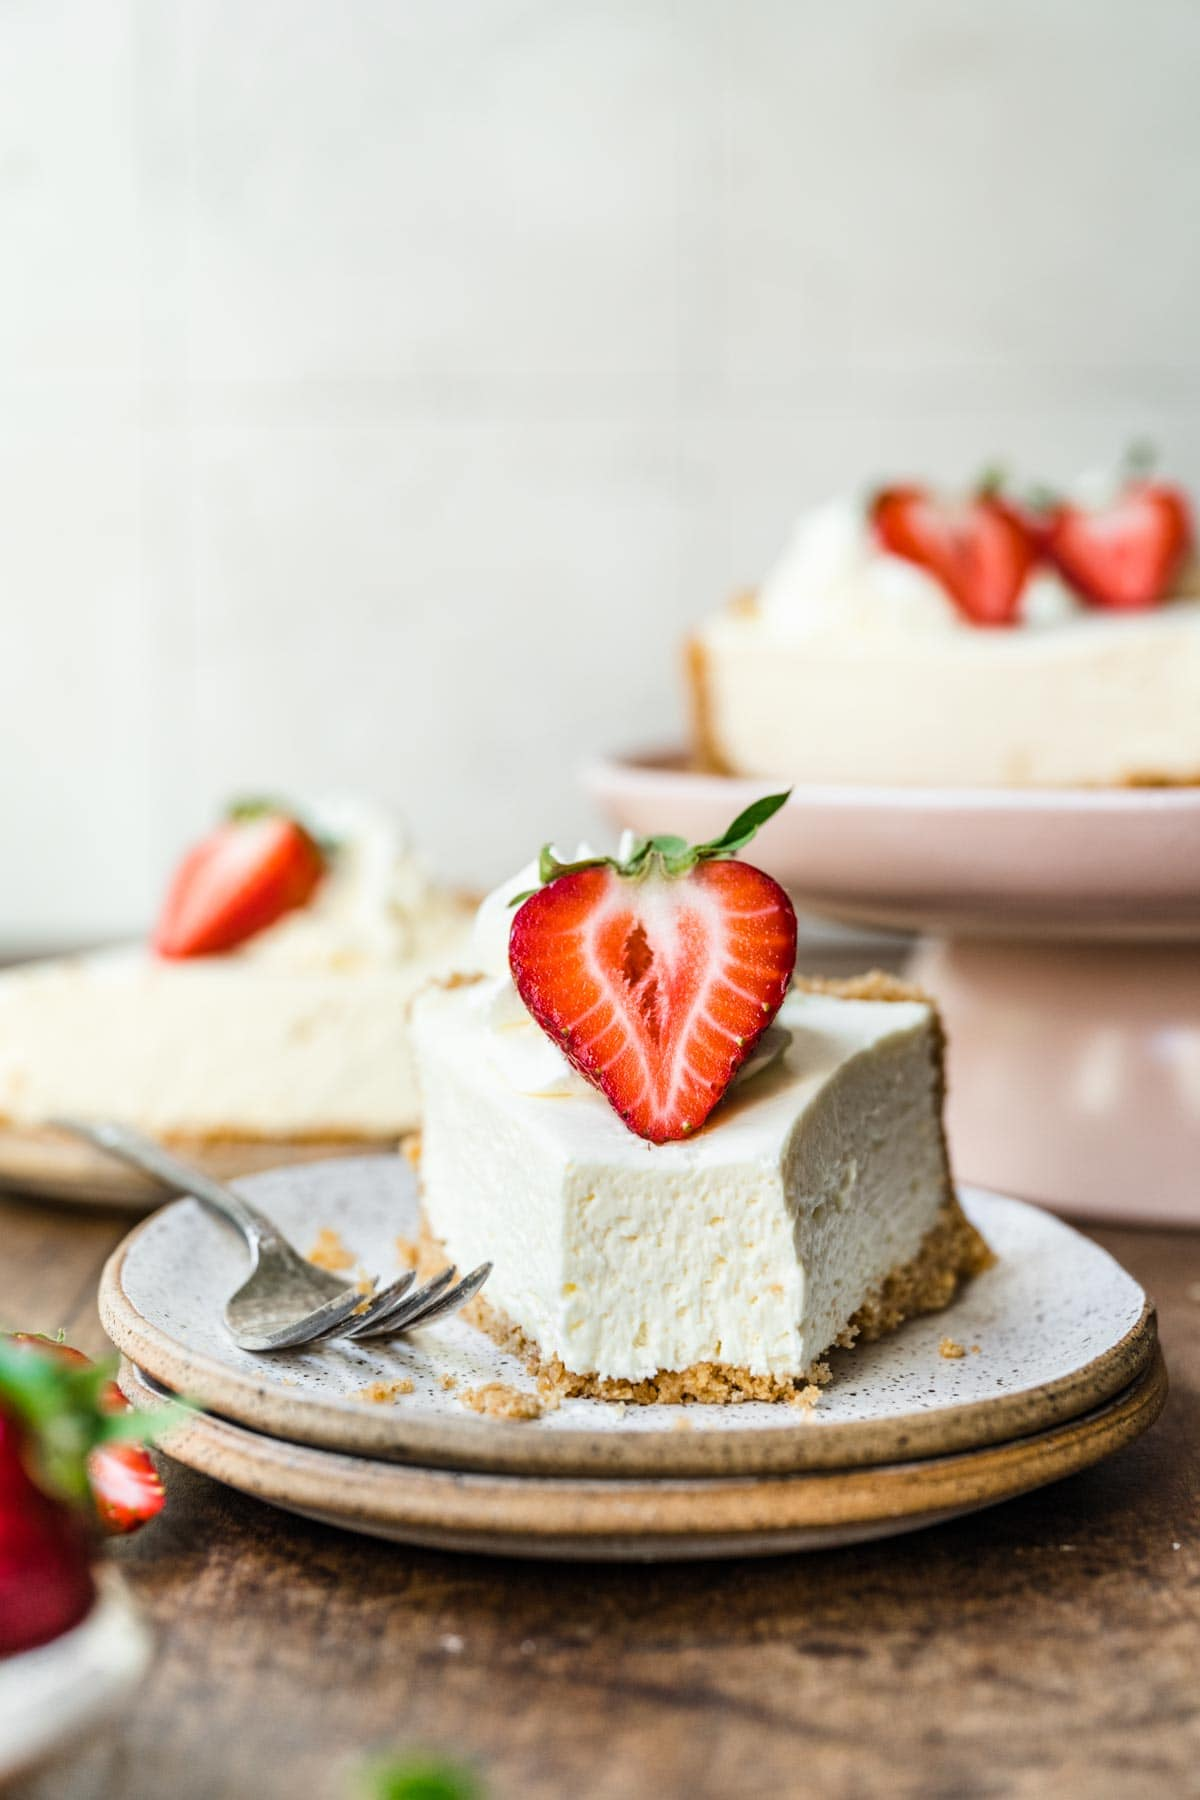 No-Bake Cheesecake sliced with fresh strawberry garnish on plate with fork